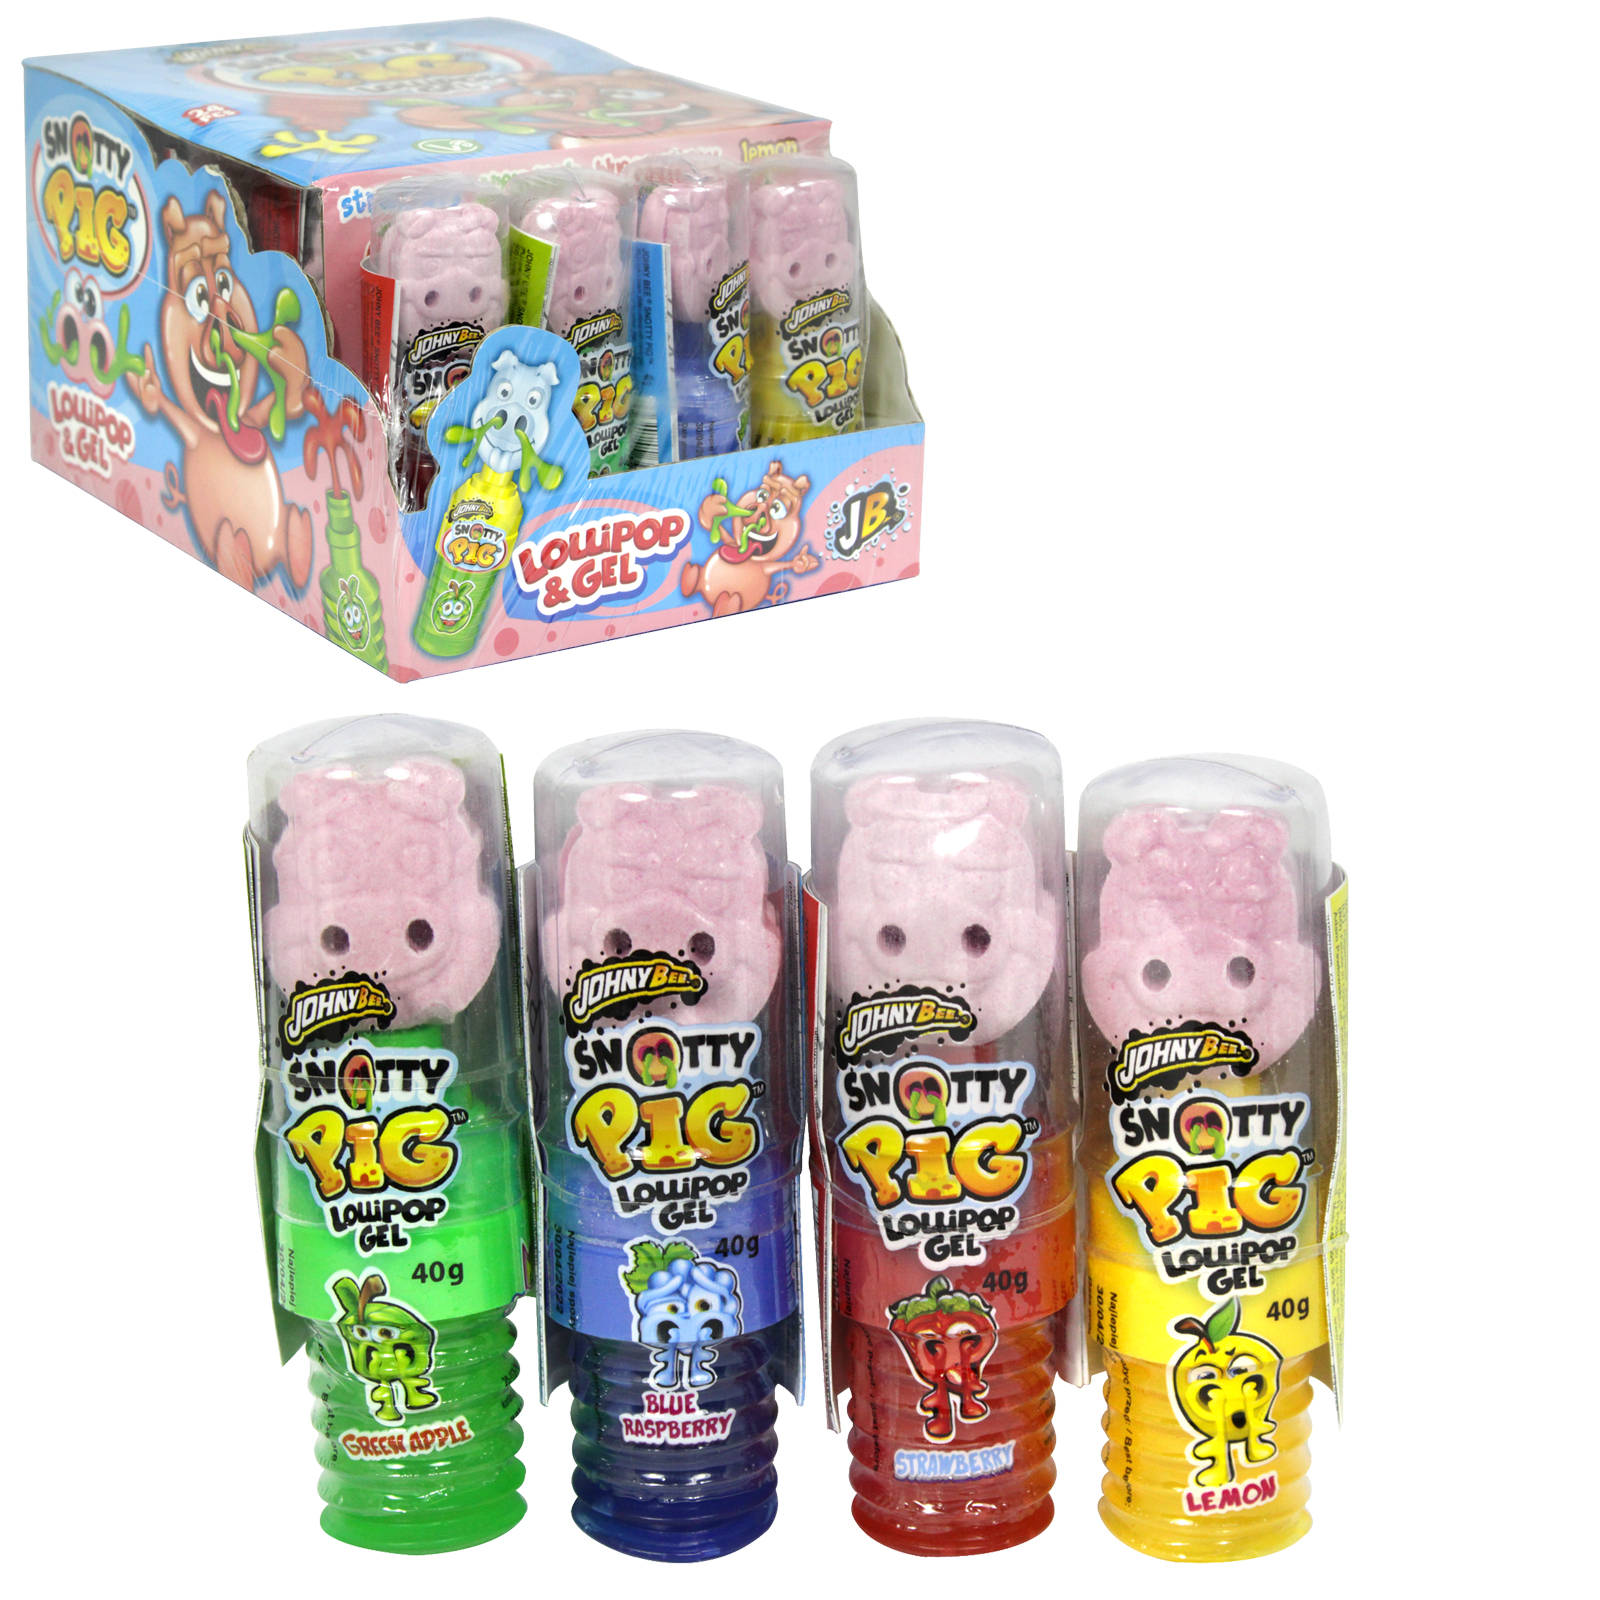 JOHNY BEE BABY SNOTTY PIG LOLLIPOP GEL ASSORTED X24